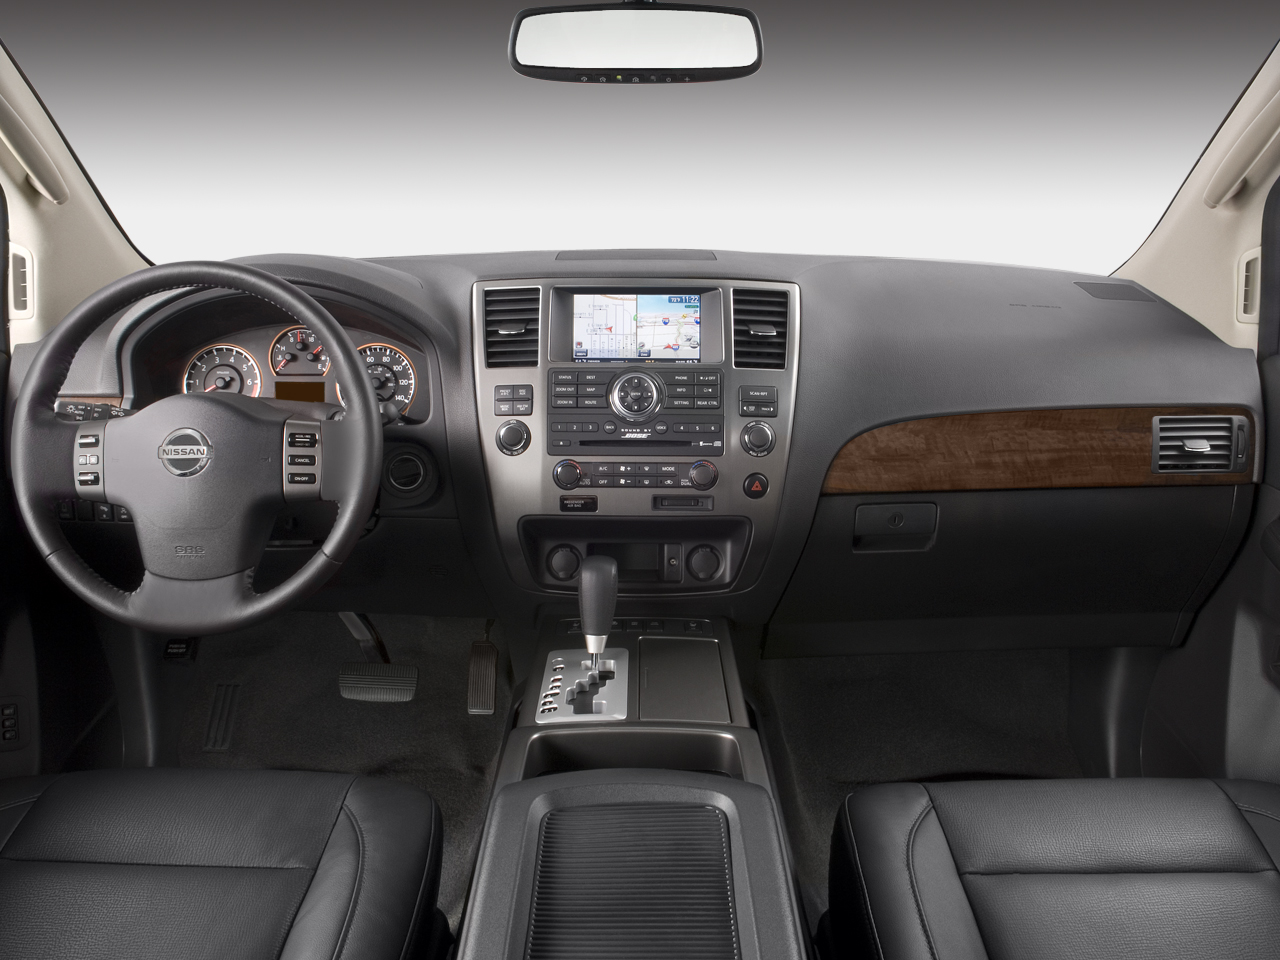 3dtuning Of Nissan Armada Suv 2008 Unique On Line Car Configurator For More Than